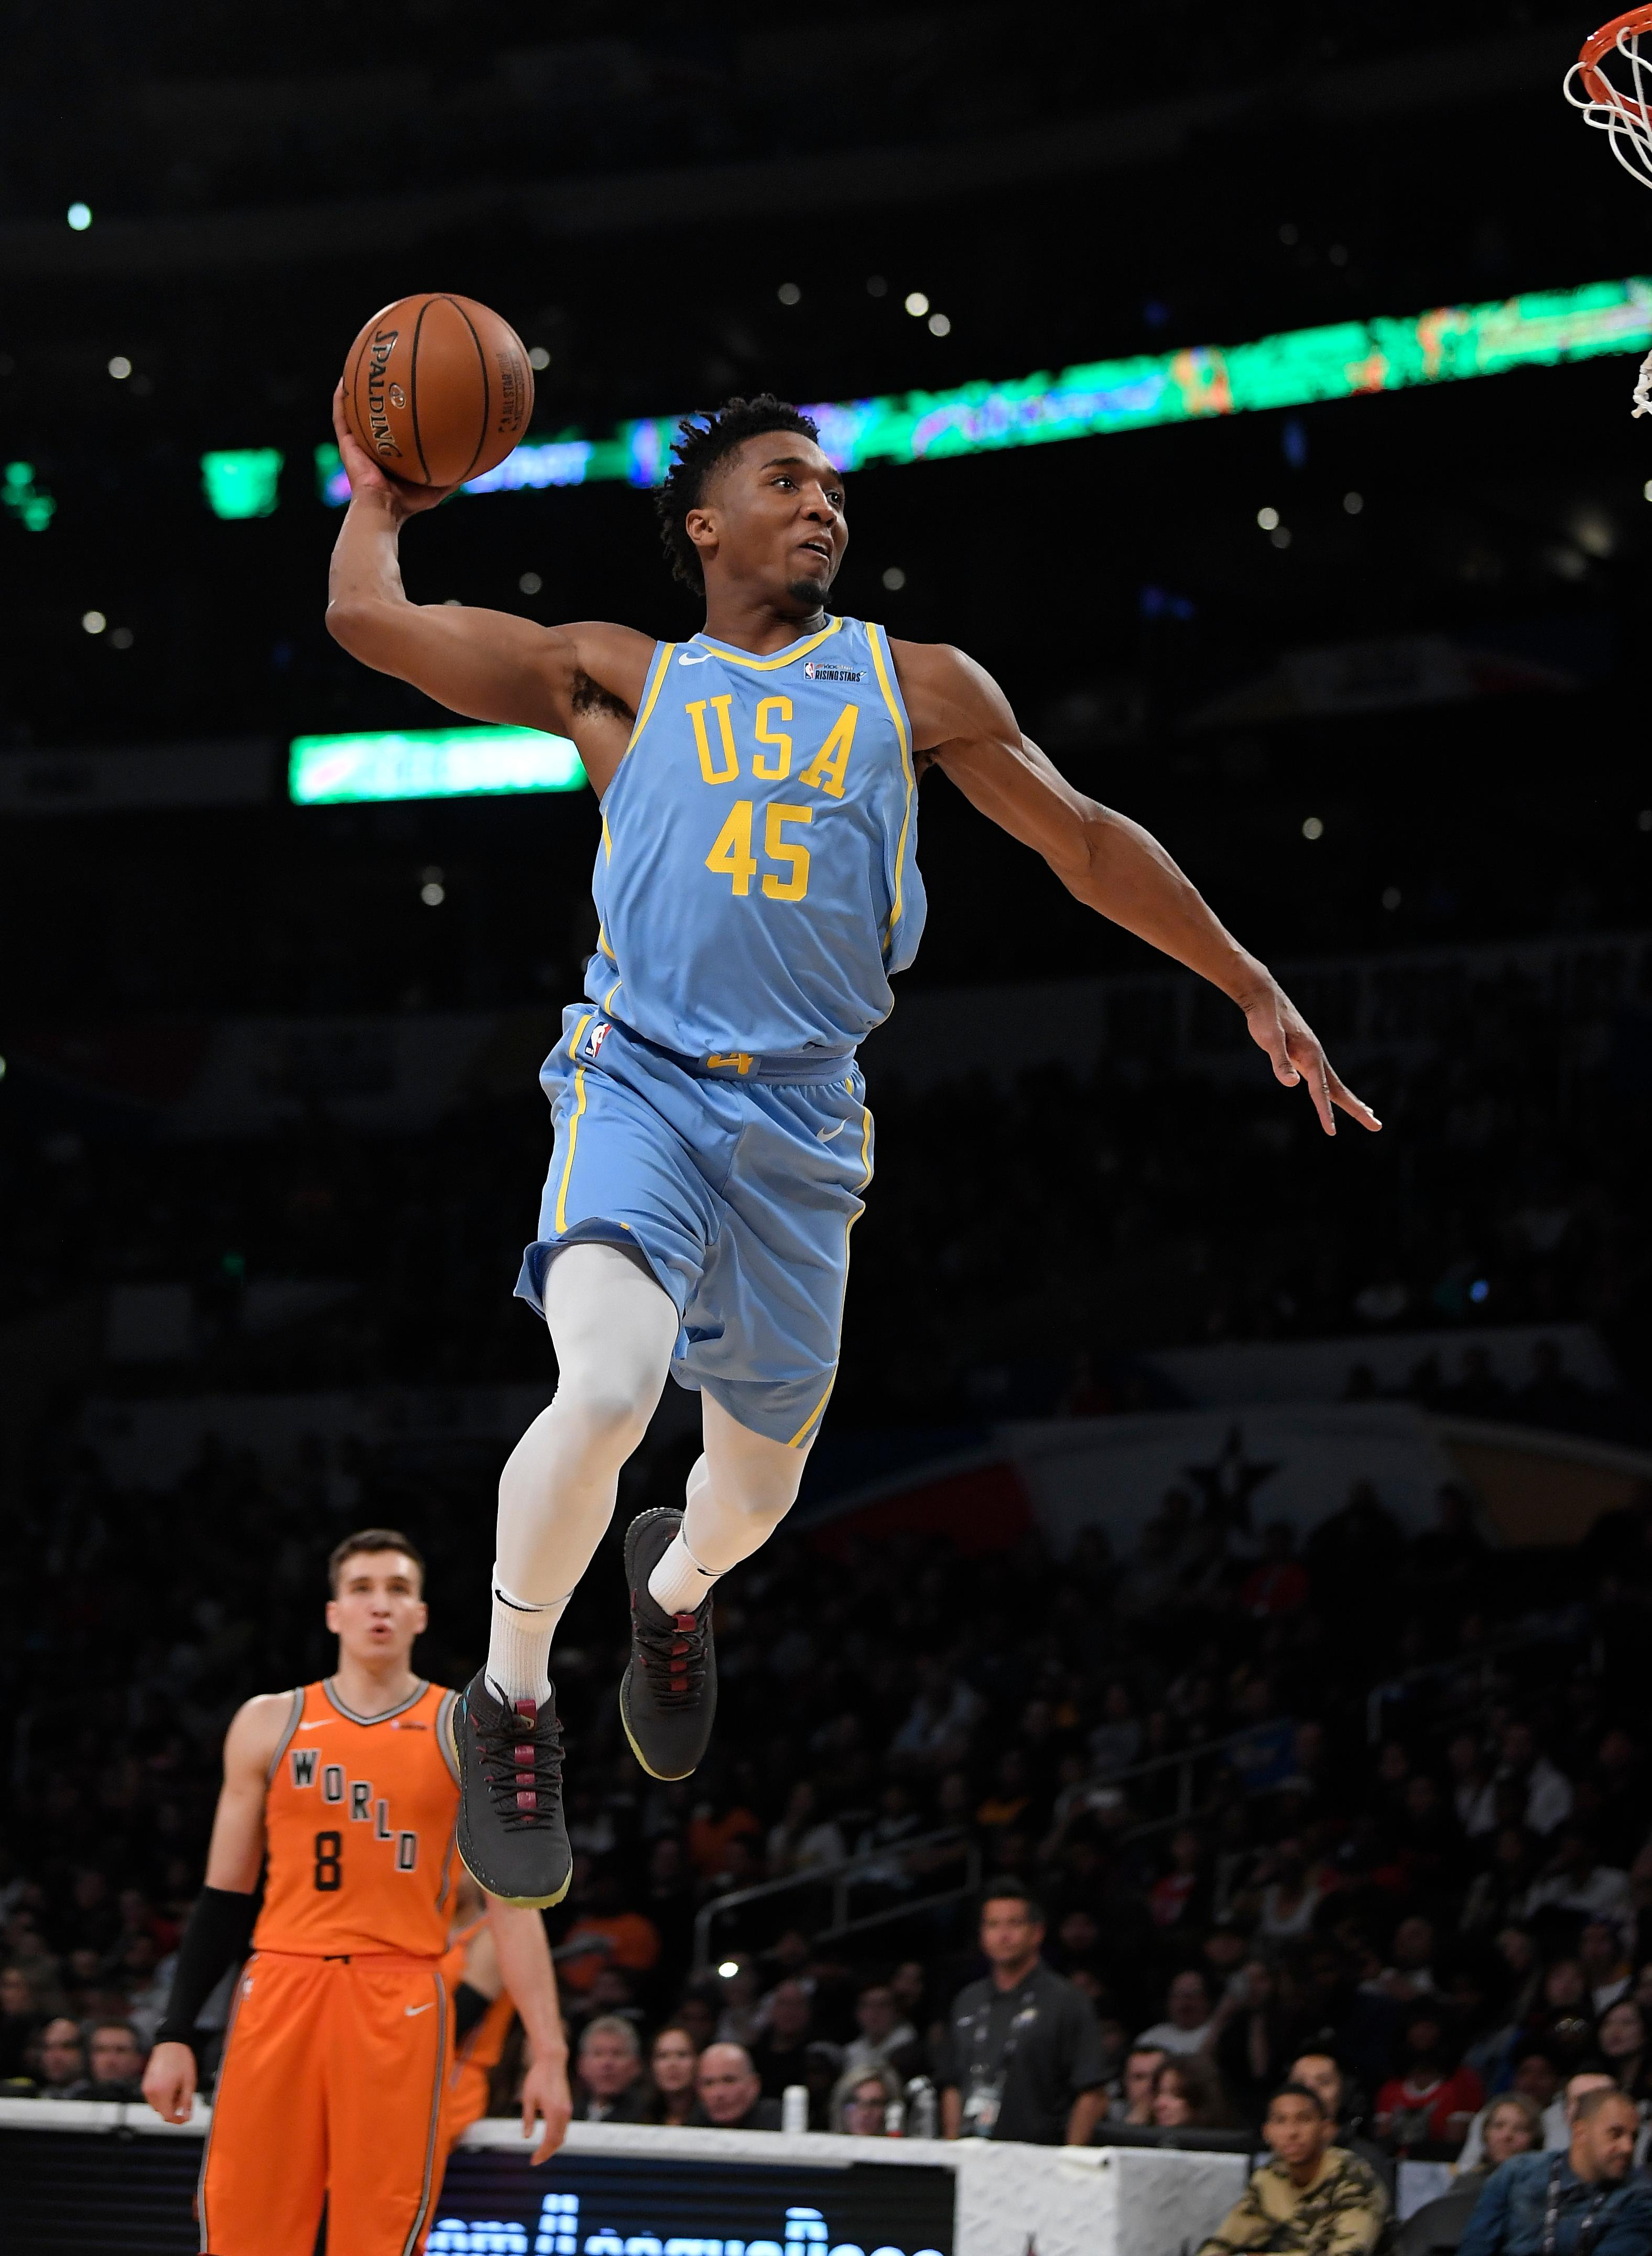 separation shoes f920a 66c49 The Latest: Jazz rookie Mitchell wins slam dunk contest | WTTE